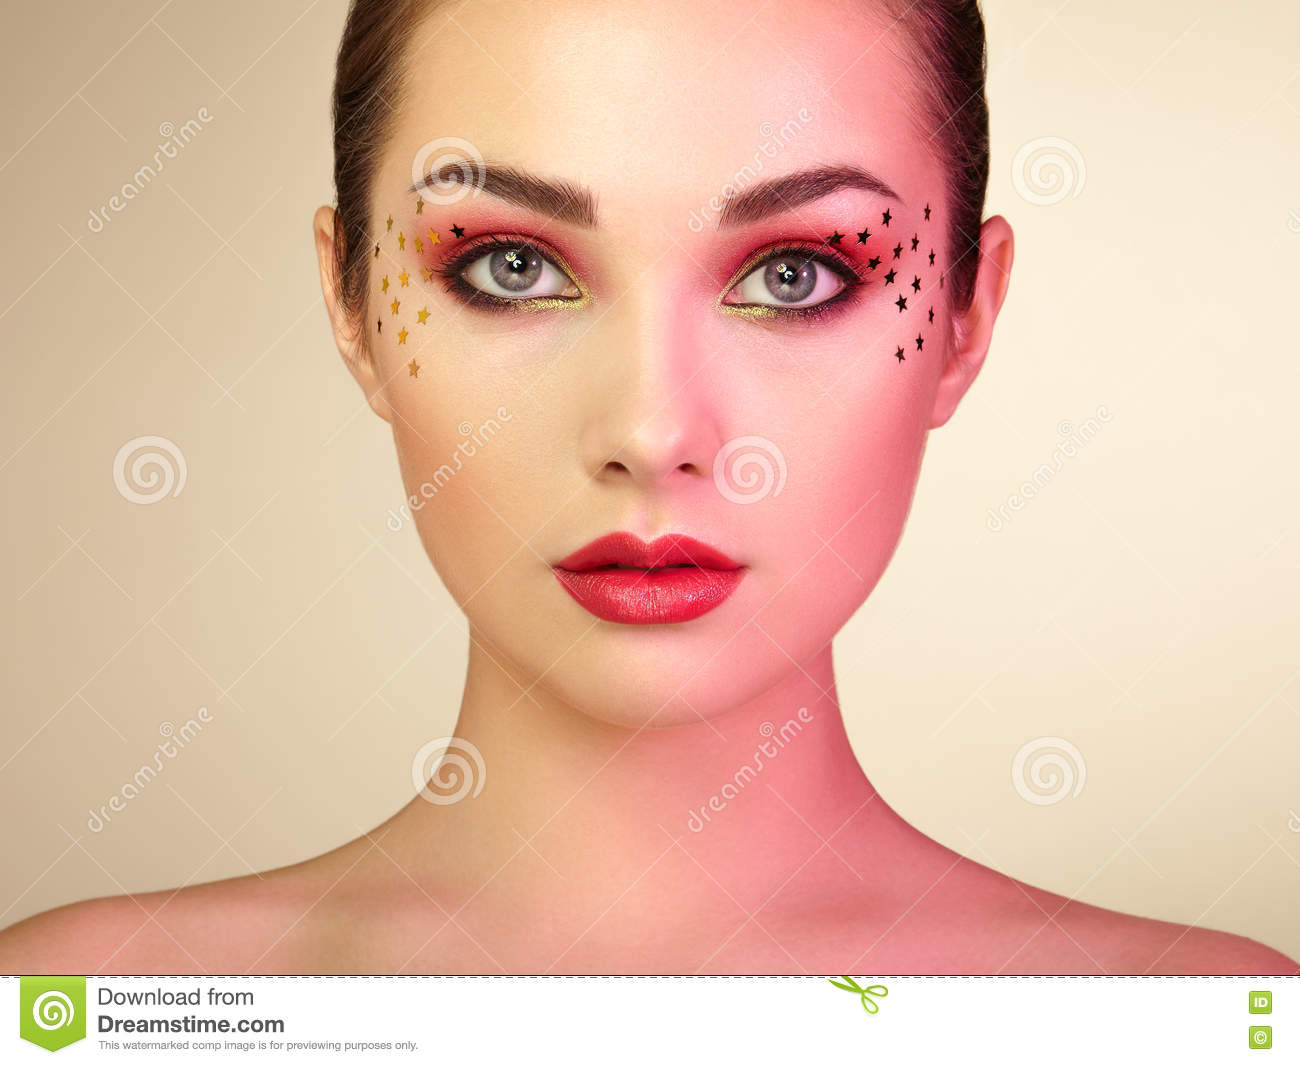 Beautiful Woman Face Stock Image. Image Of Lady, Female